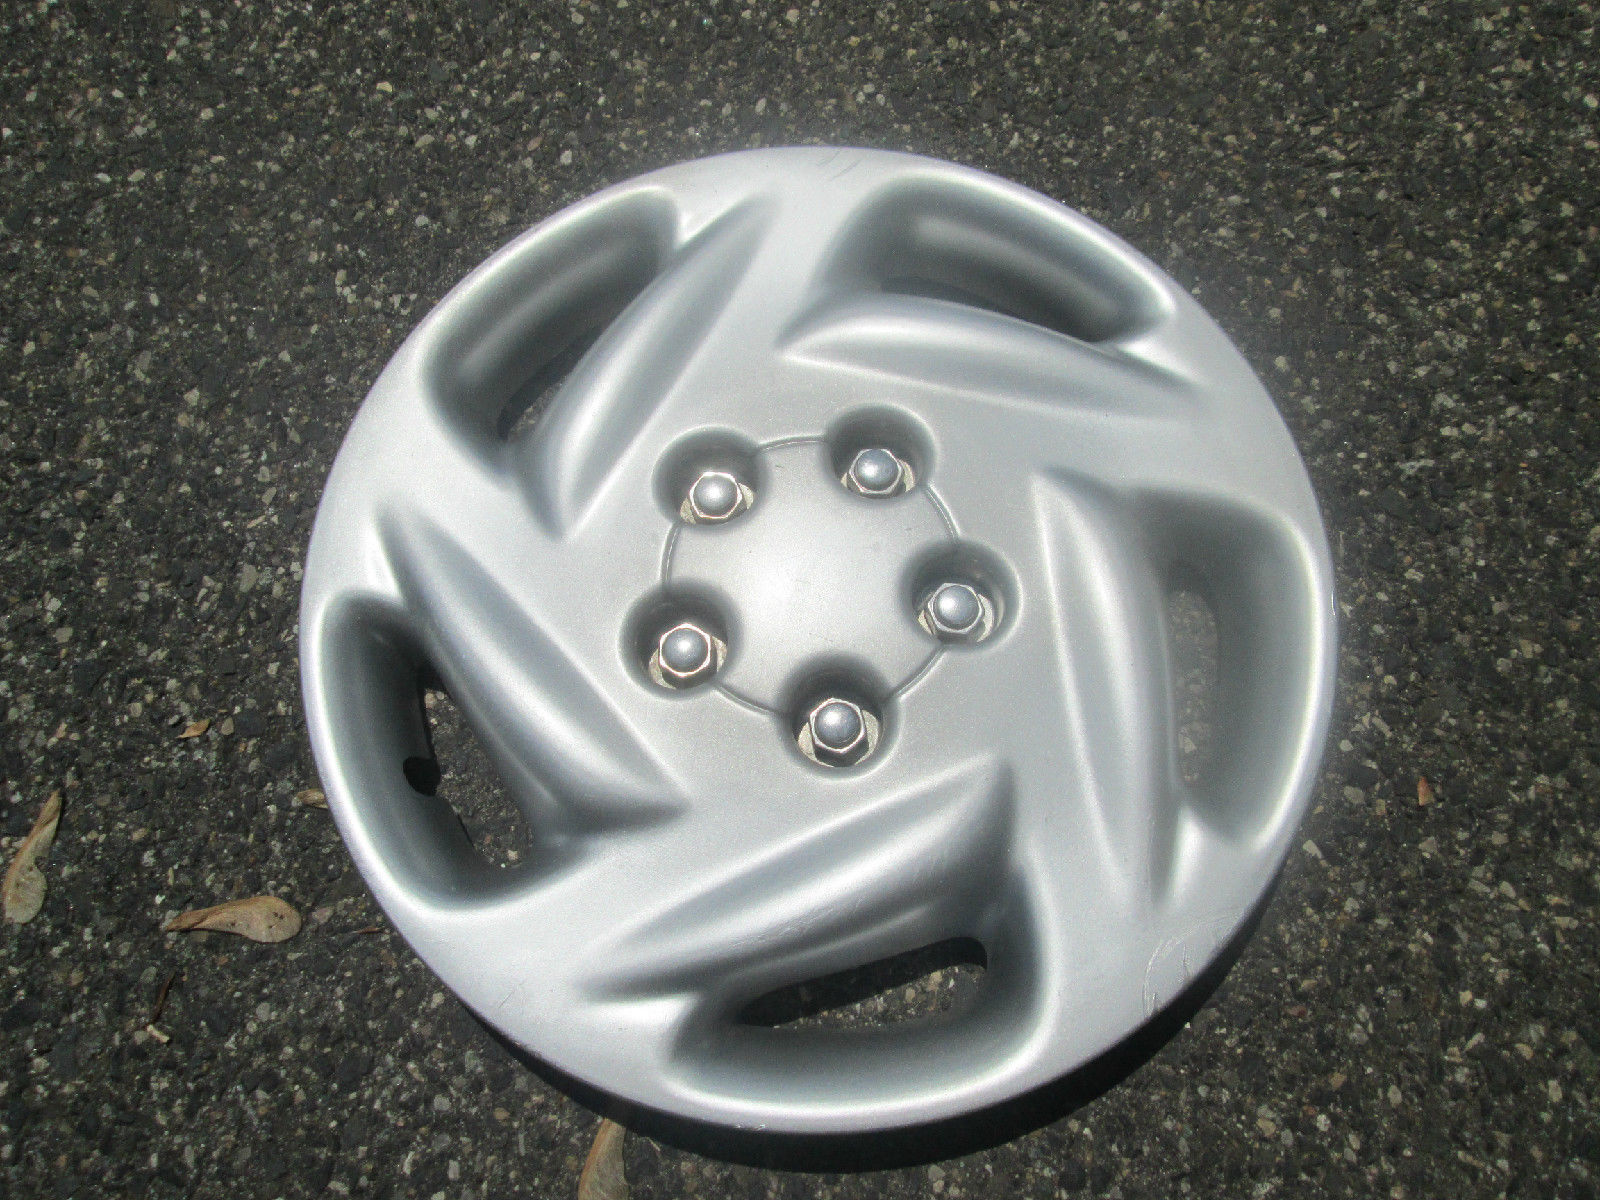 Primary image for One factory 1996 to 2000 Dodge Grand Caravan 15 inch hubcap wheel cover